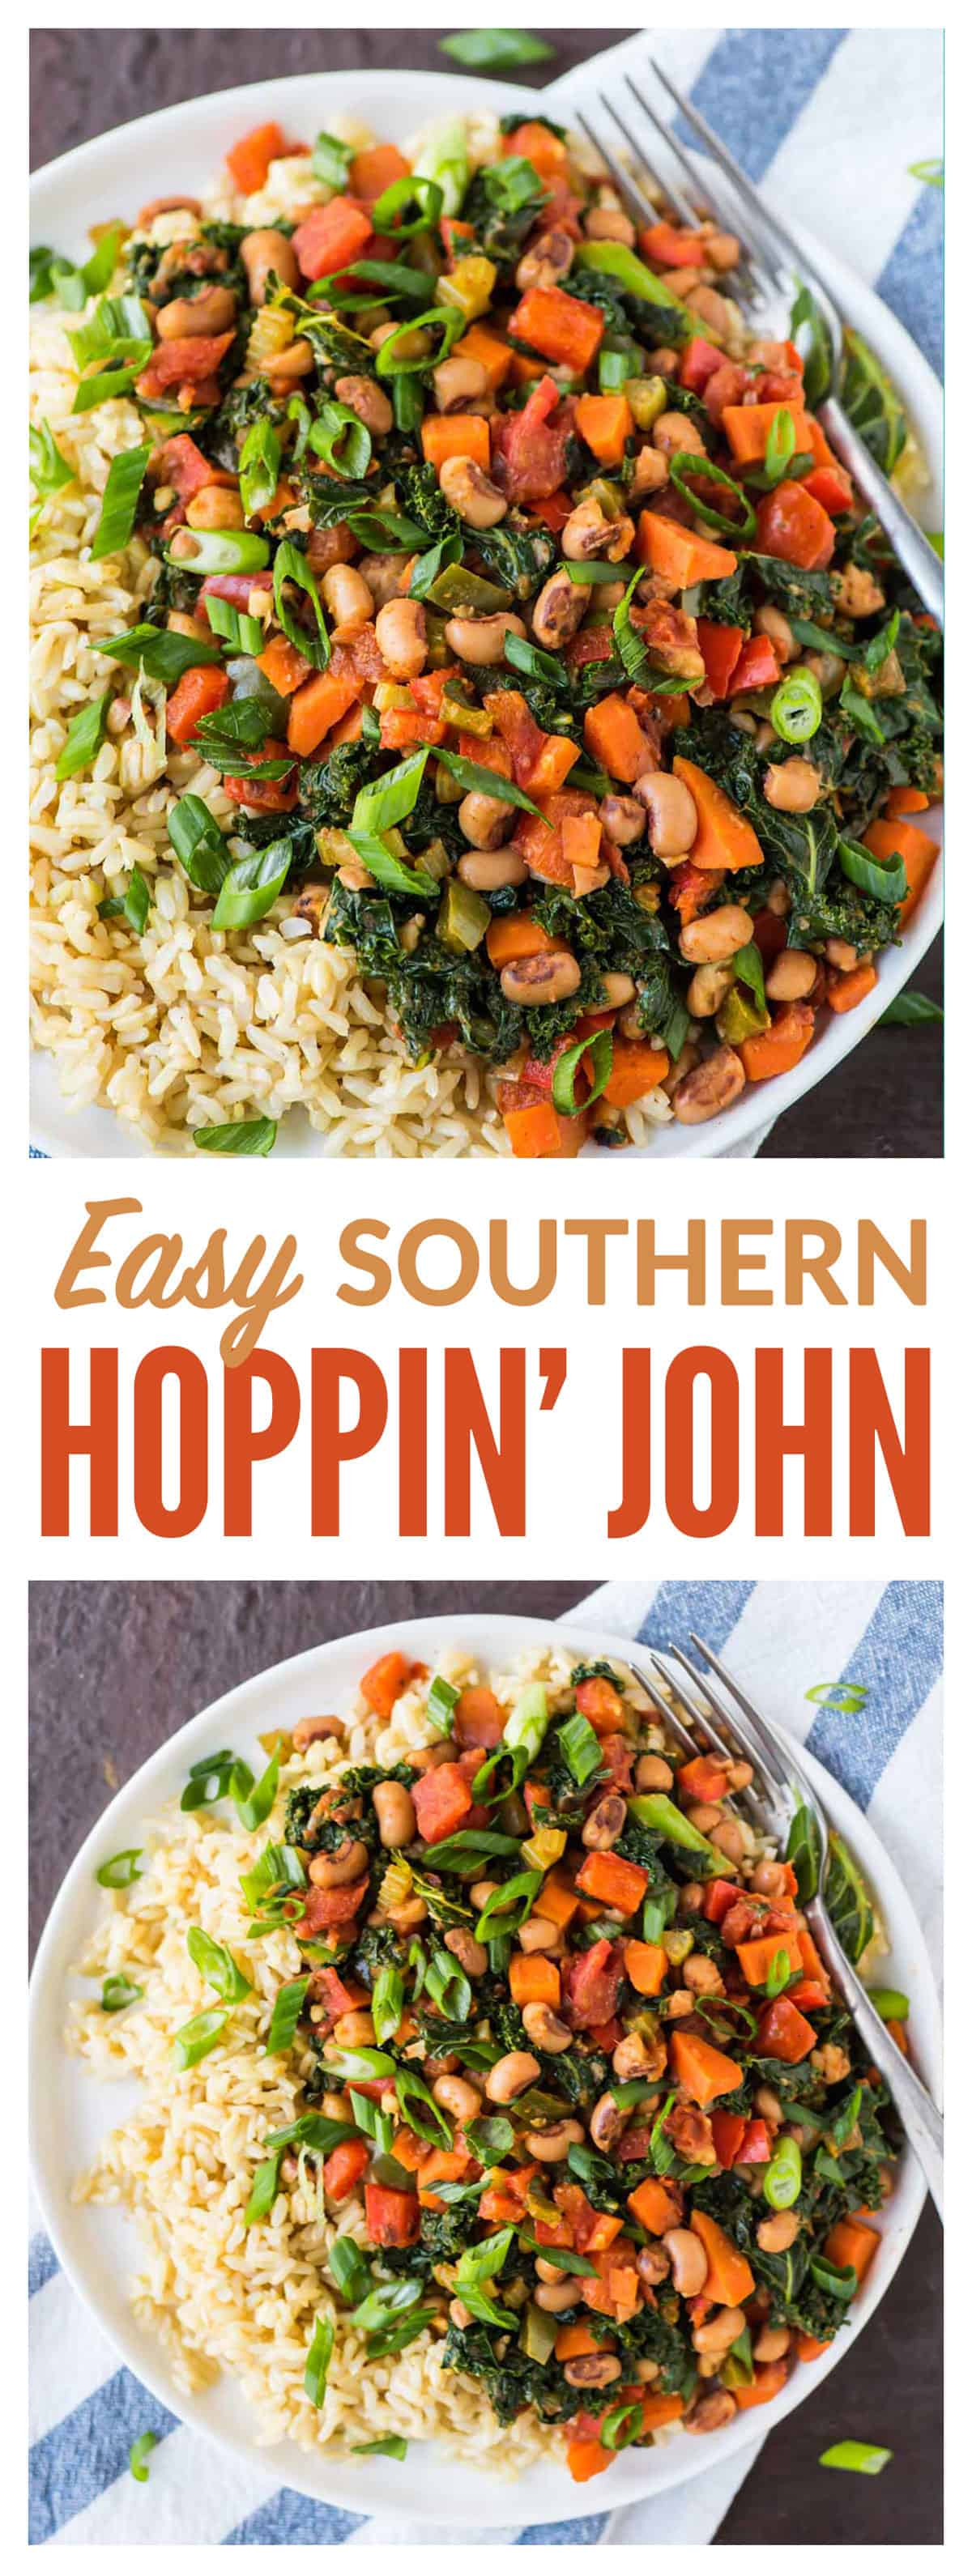 Hoppin john recipe easy vegetarian hoppin john a healthy twist on traditional southern hoppin john made forumfinder Image collections